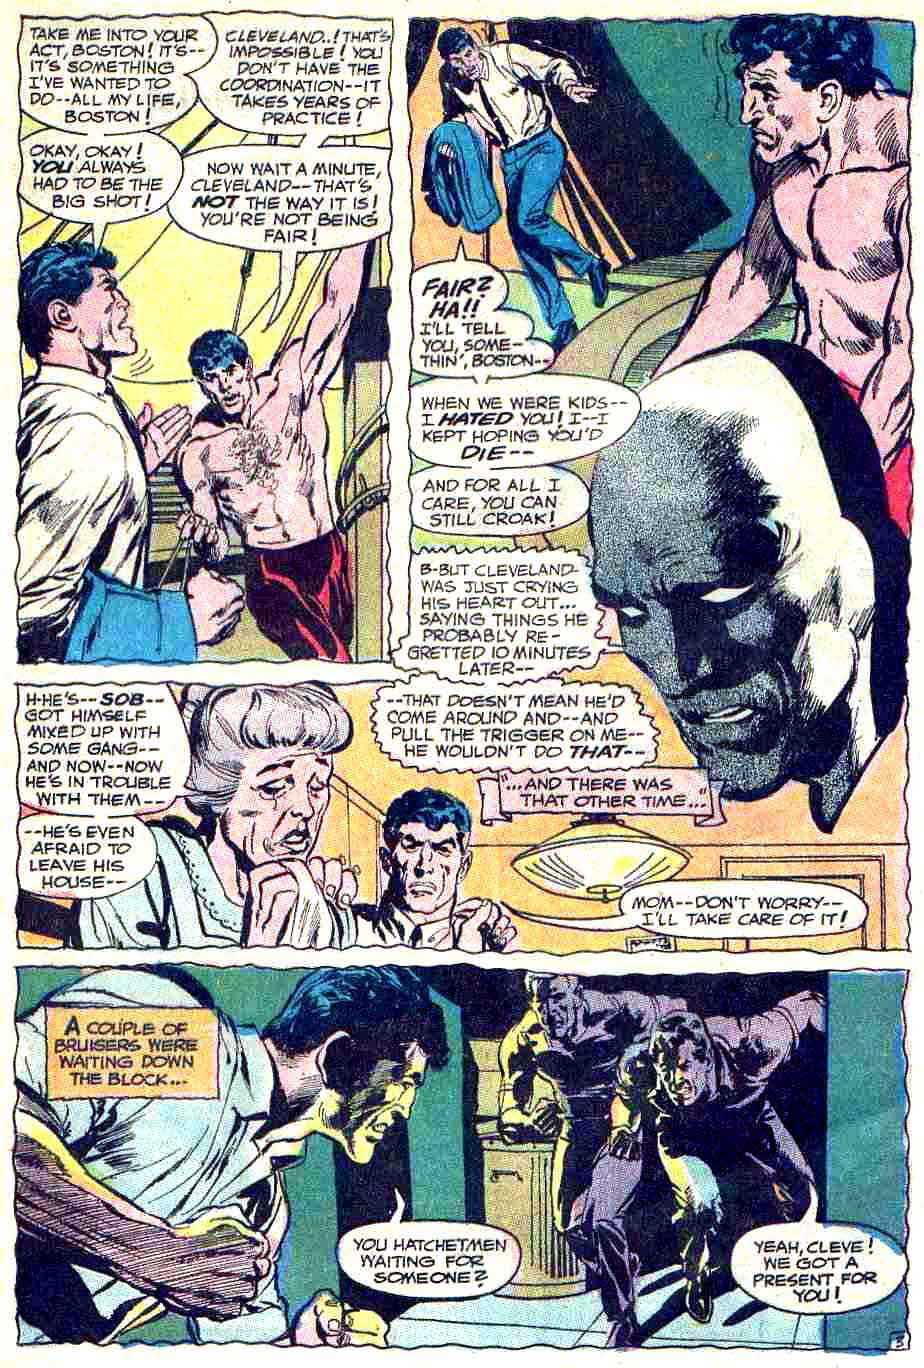 Strange Adventures v1 #211 dc 1960s silver age comic book page art by Neal Adams